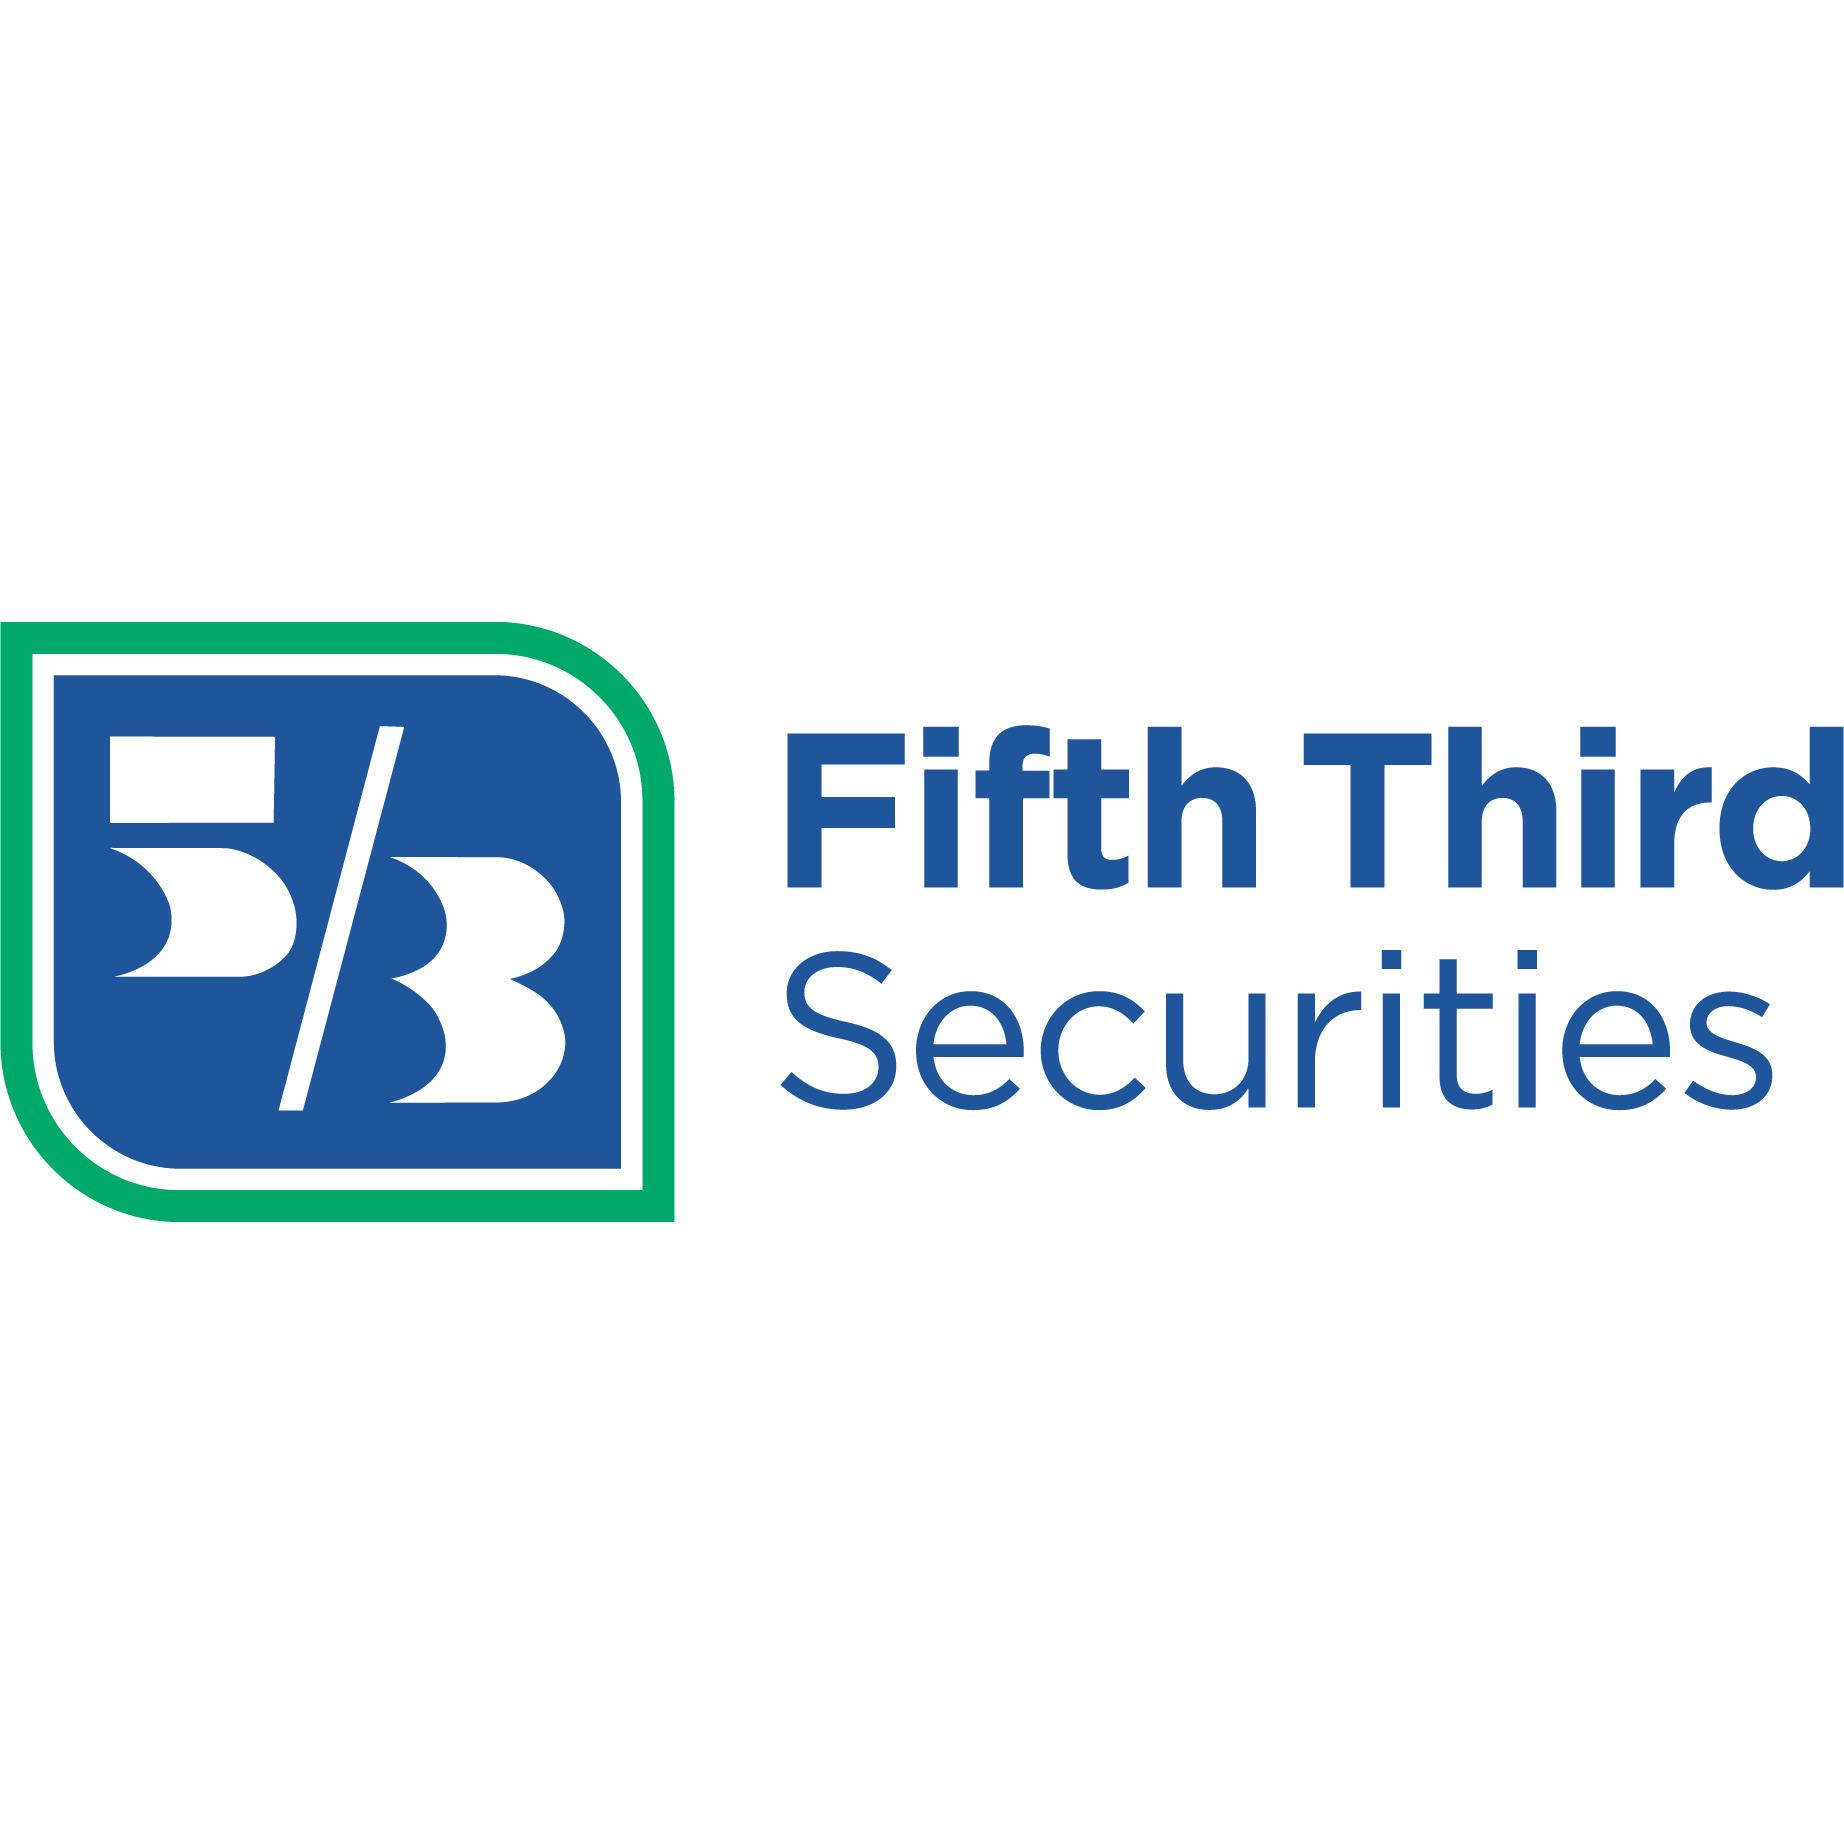 Fifth Third Securities - Kevin Doyle